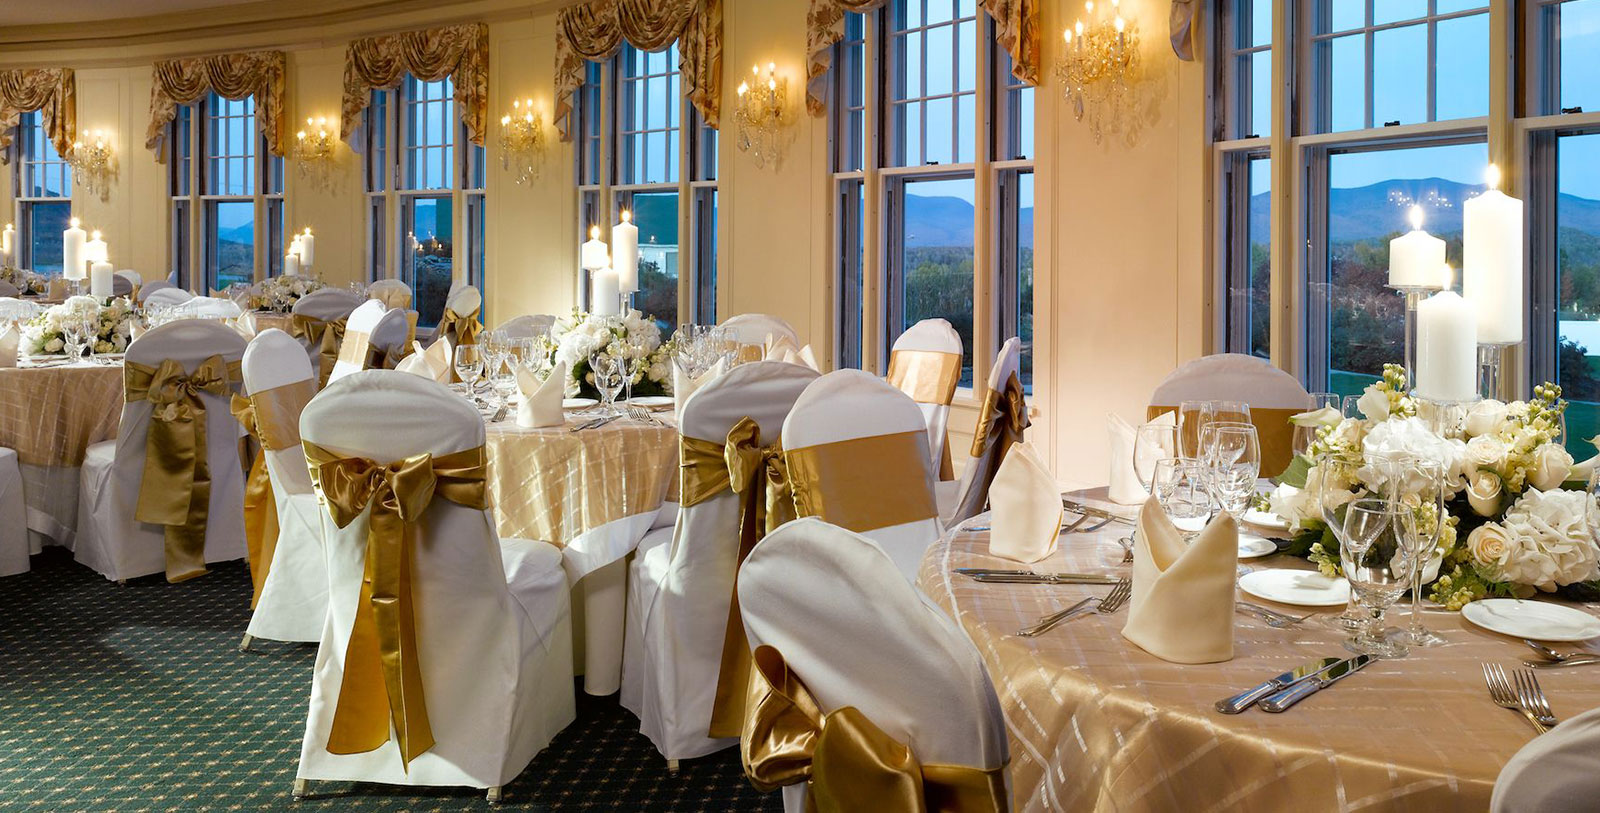 Image of Wedding Reception, Mountain View Grand Resort & Spa in Whitefield, New Hampshire, 1865, Member of Historic Hotels of America, Weddings